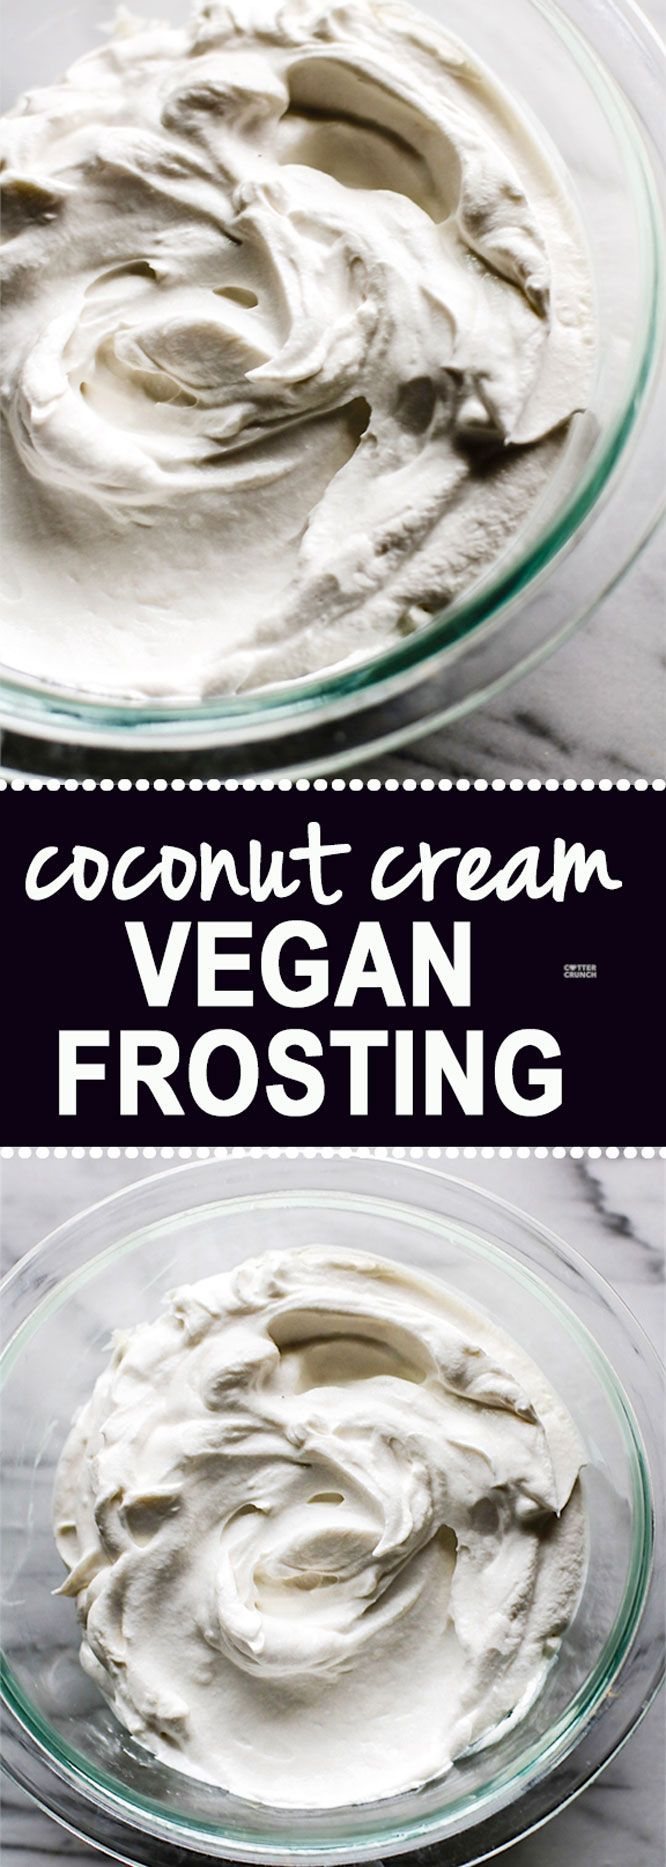 How to Make Gluten Free Fluffy Coconut Cream Vegan Frosting! It literally takes 2 ingredients and just one method. This coconut cream vegan frosting is super delicious, healthy, paleo friendly, and did I mention EASY?! Yes! SIMPLE to make @cottercrunch